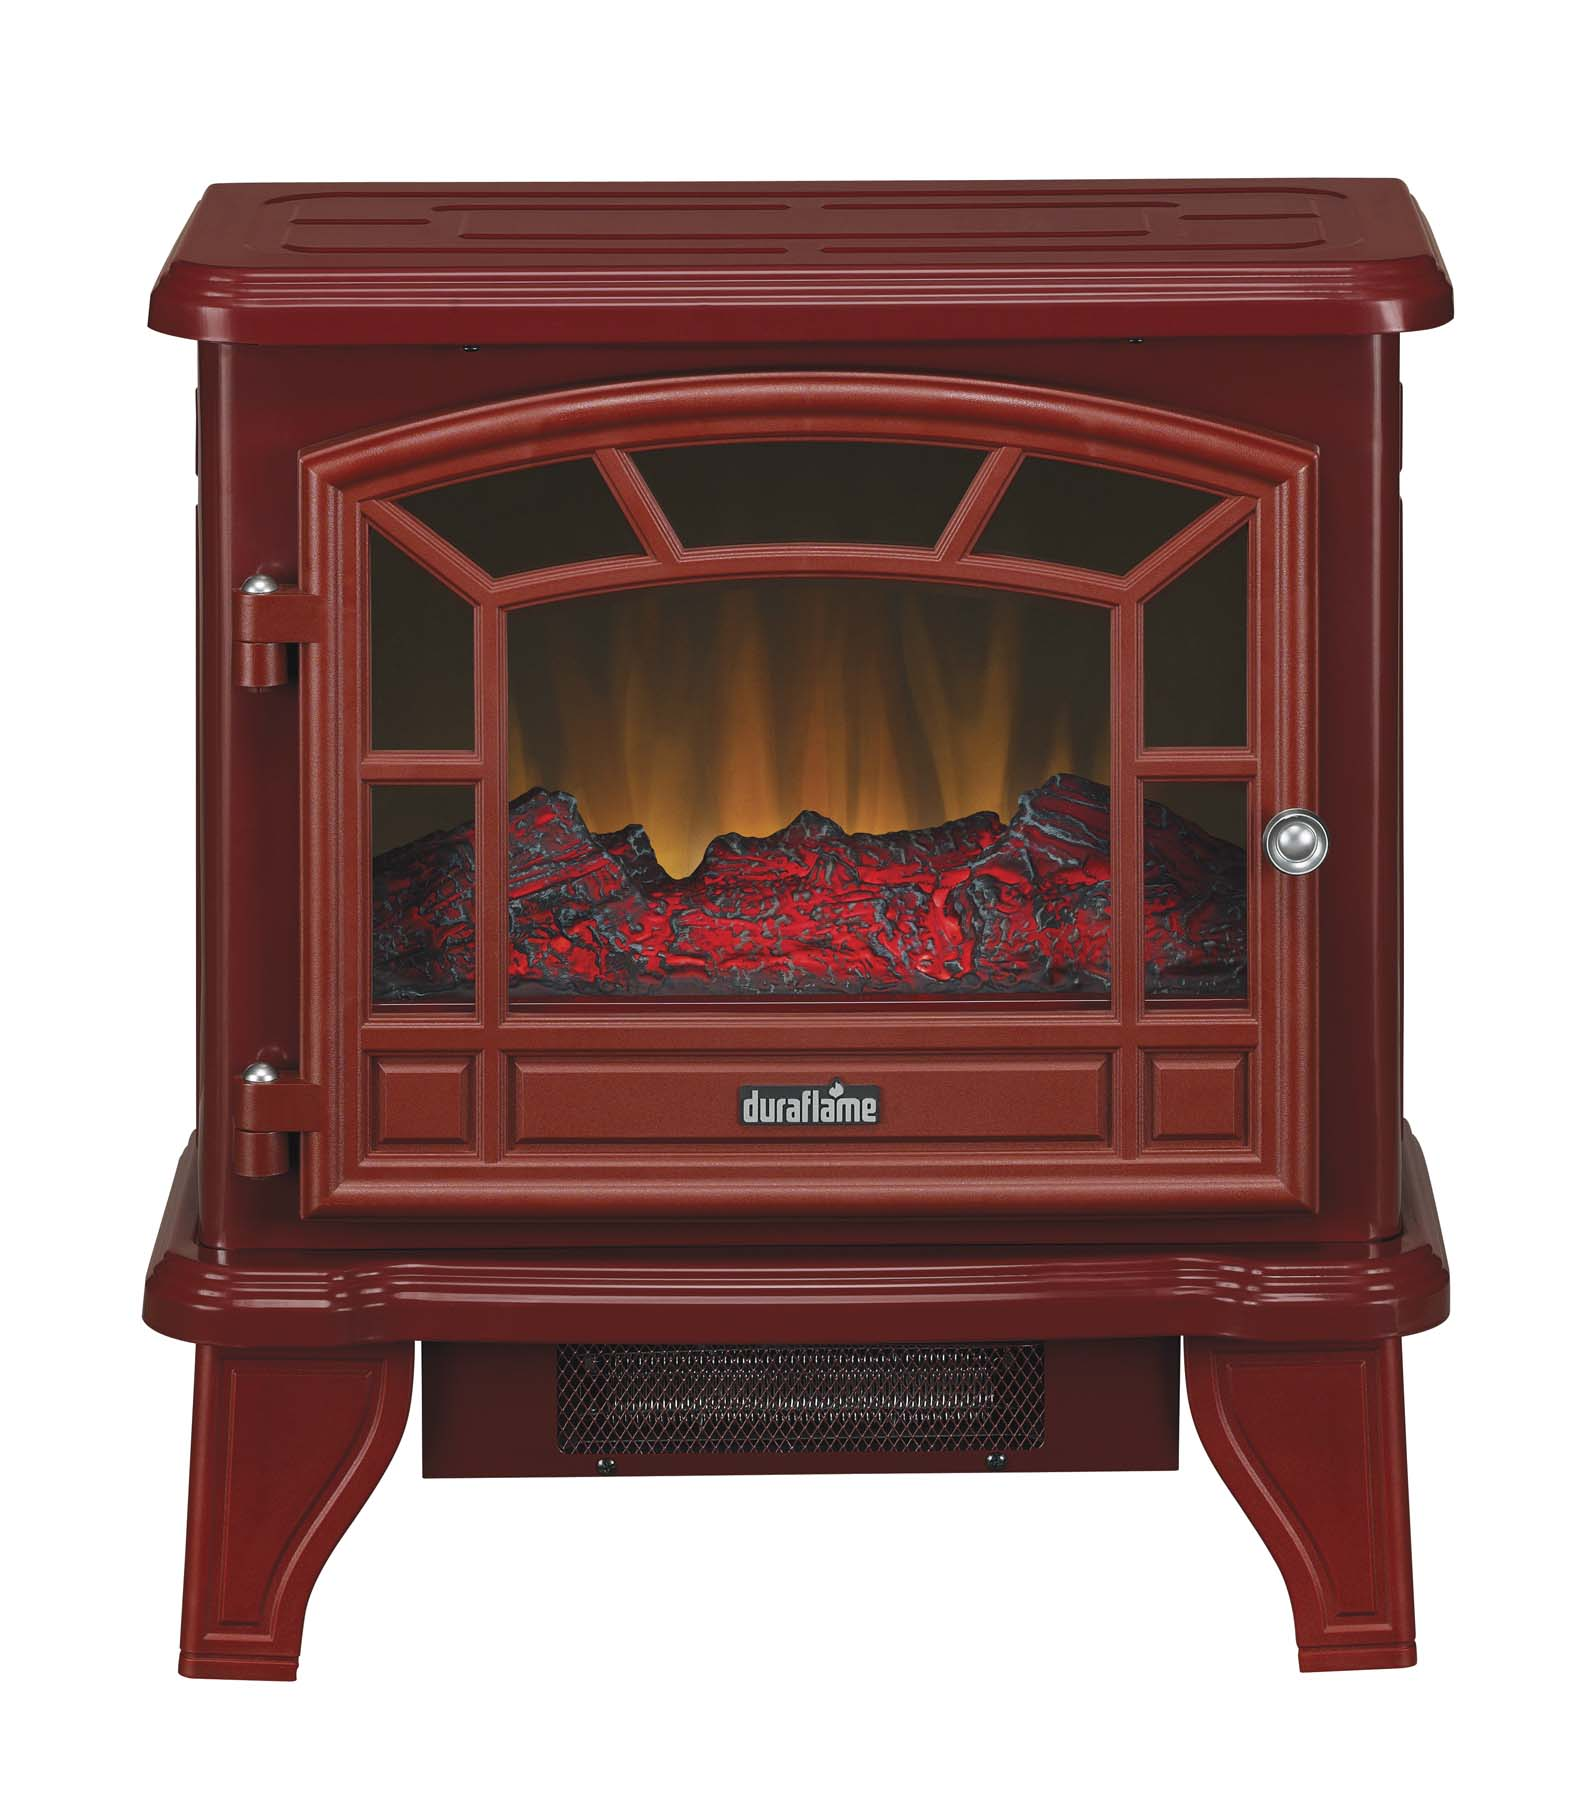 New classic flame electric fireplace inserts make an existing chimney - 20 Duraflame Red Stove Electric Fireplace